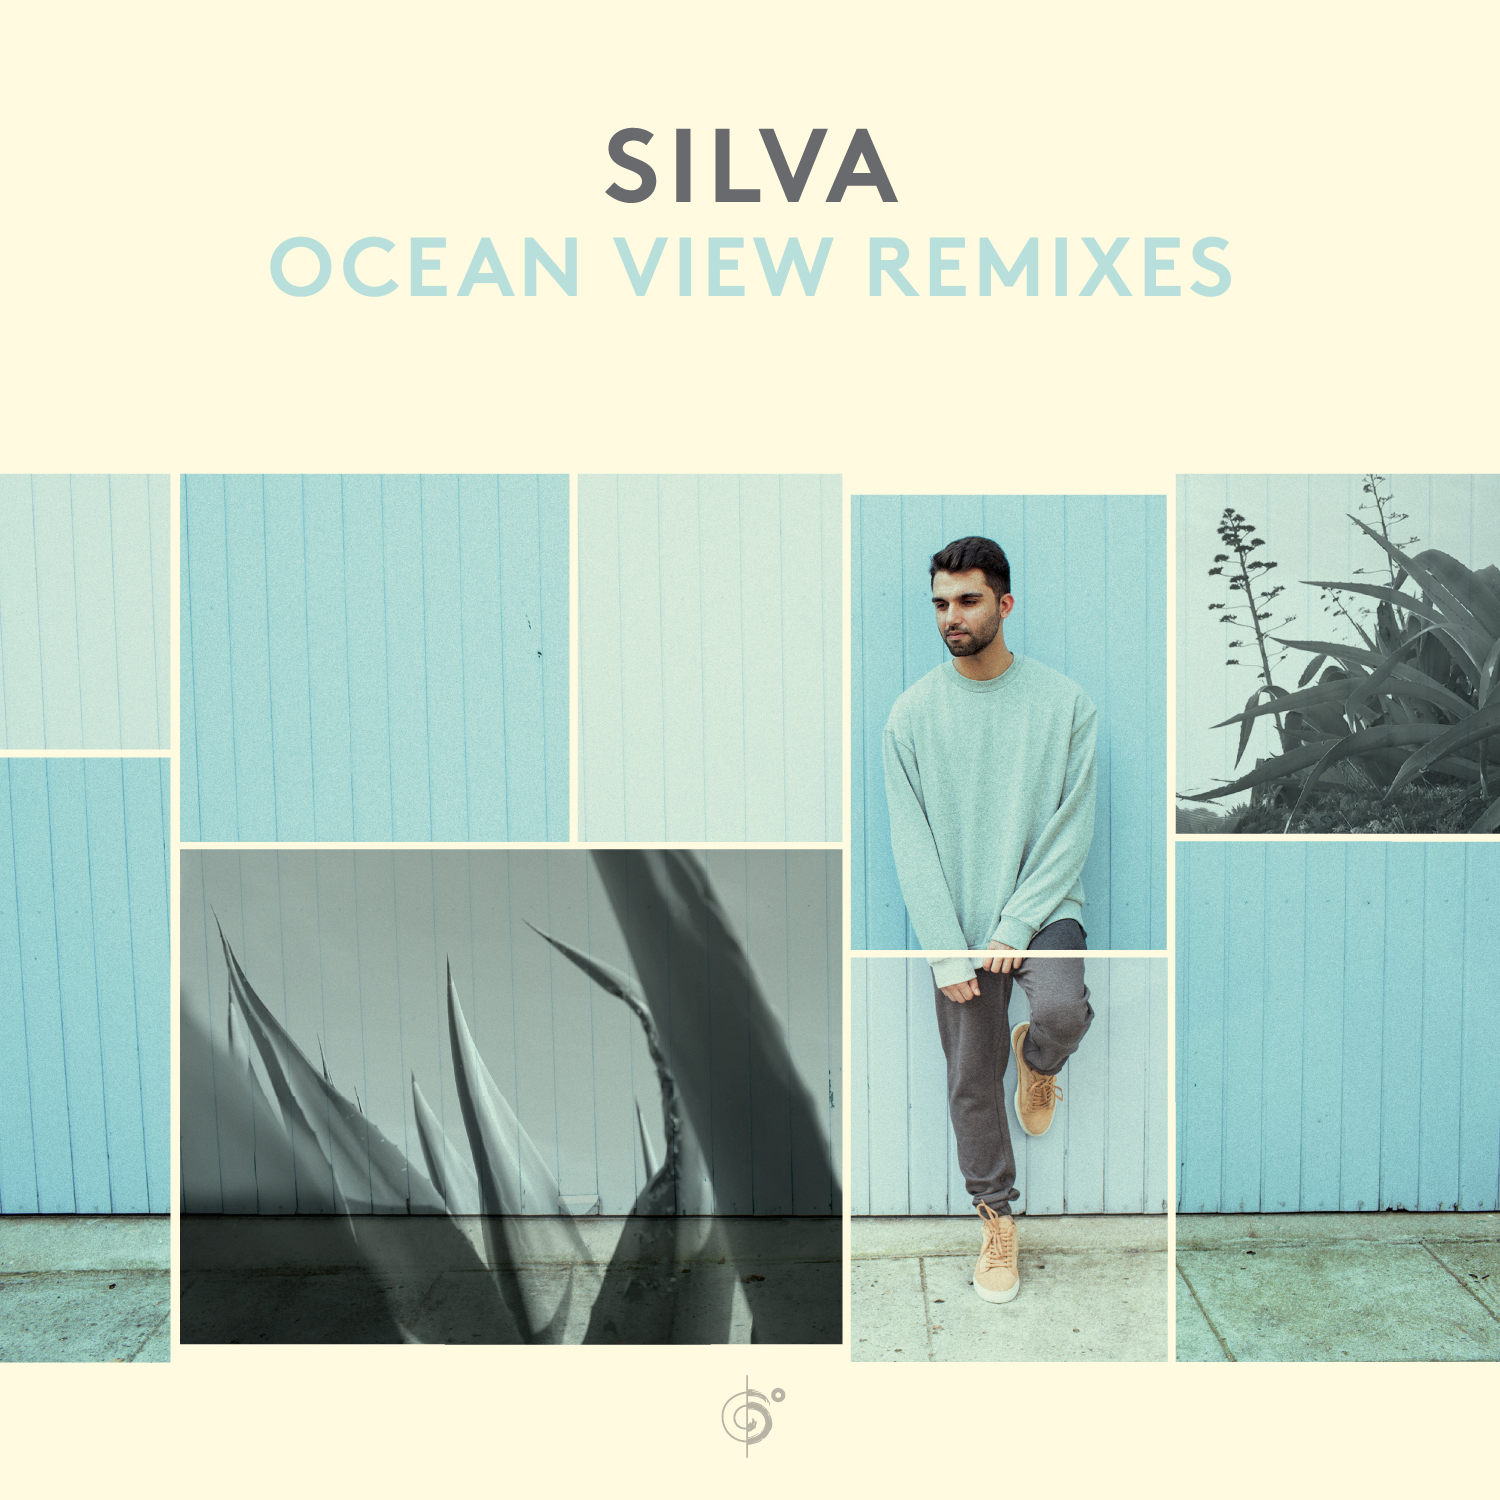 Silva – Ocean View Remixes